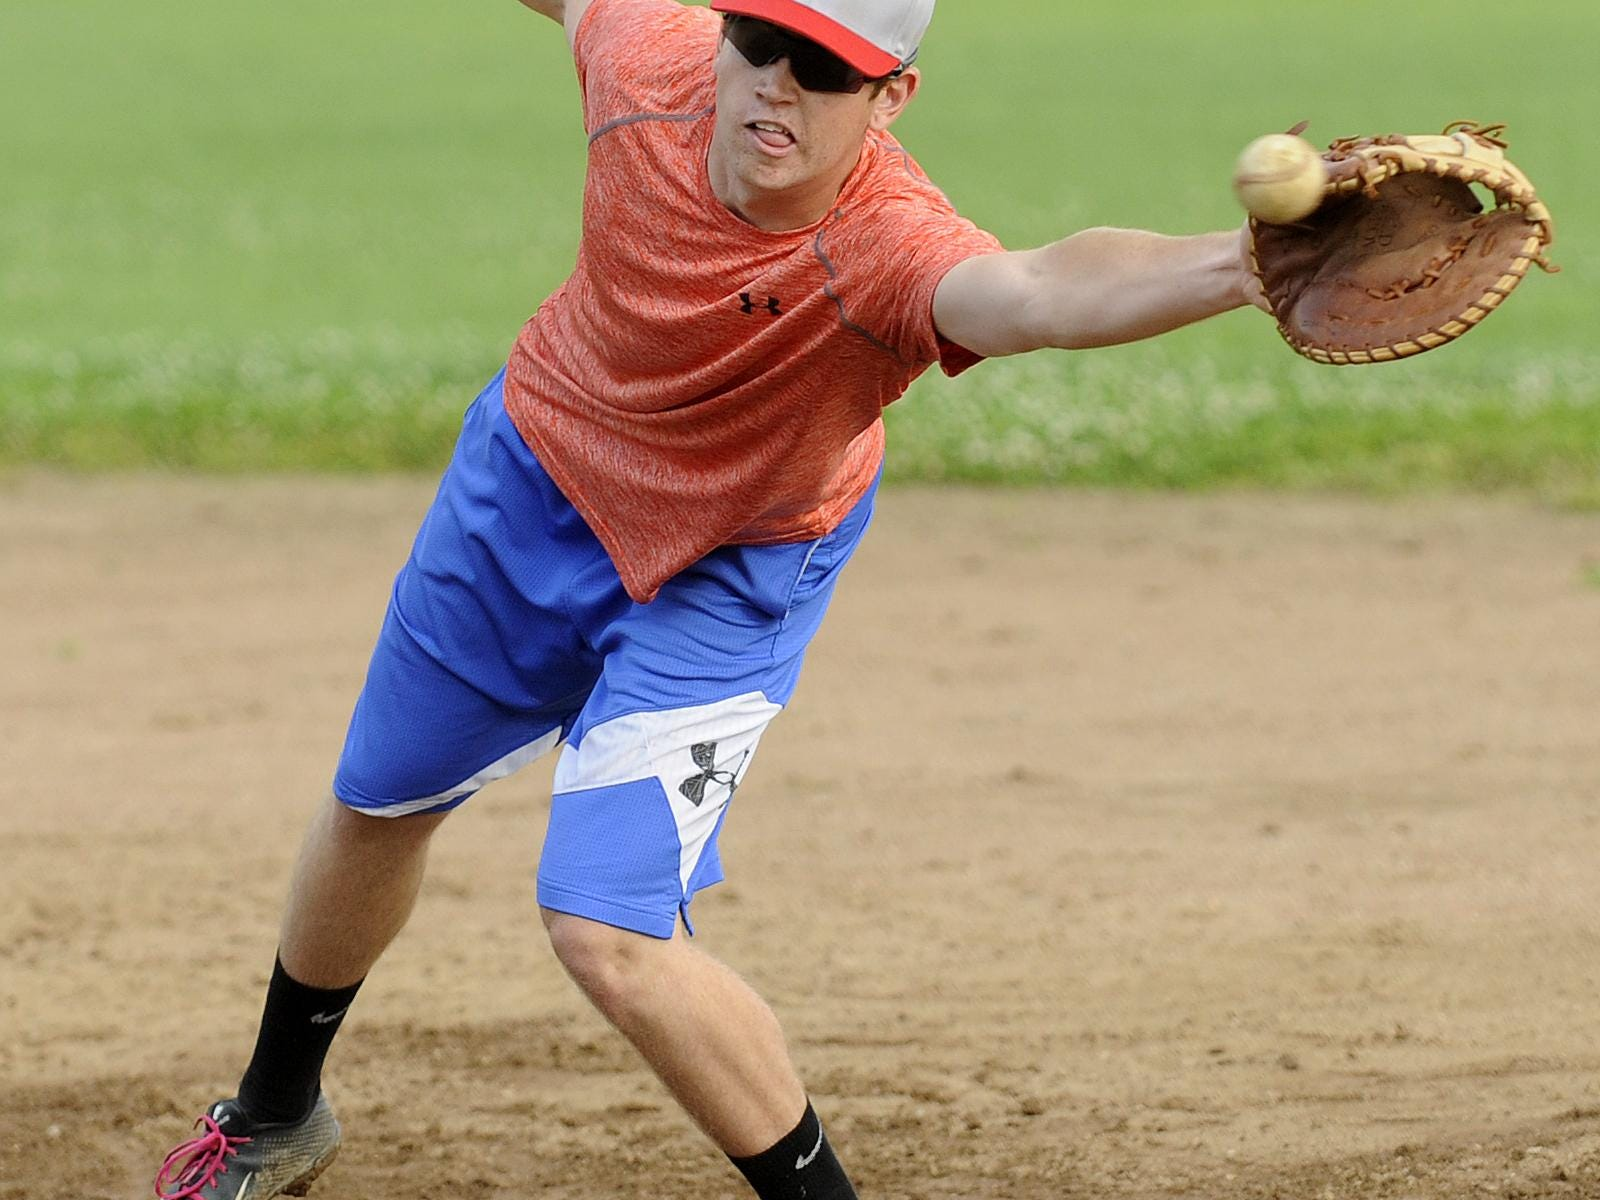 Granville graduate Ryan Blessard reaches for the ball at first base during a recent Utica Post 92 practice at Newark High School.